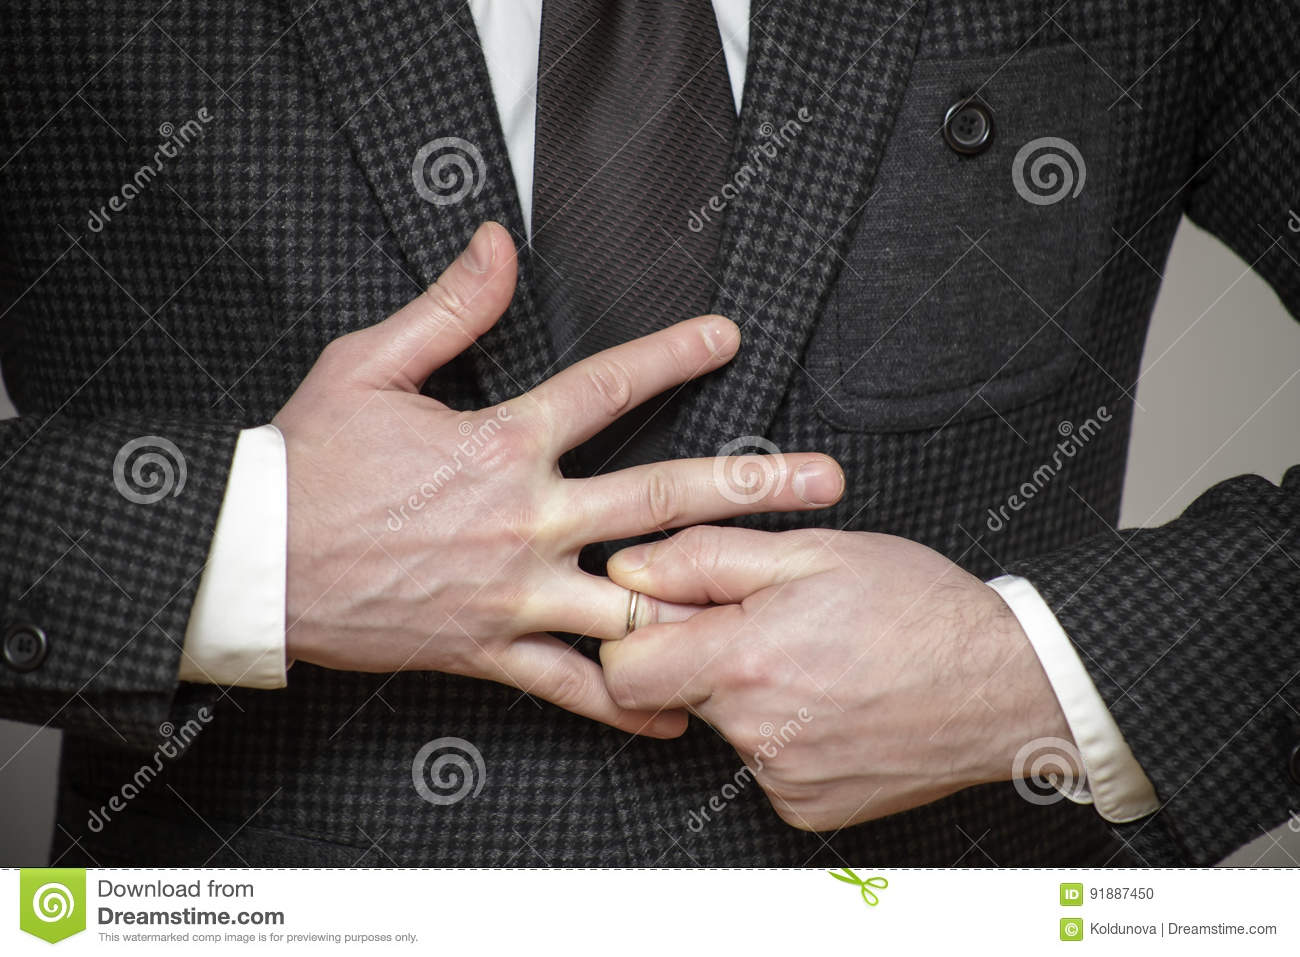 Remove Wedding Ring From His Finger Stock Photo - Image: 91887450